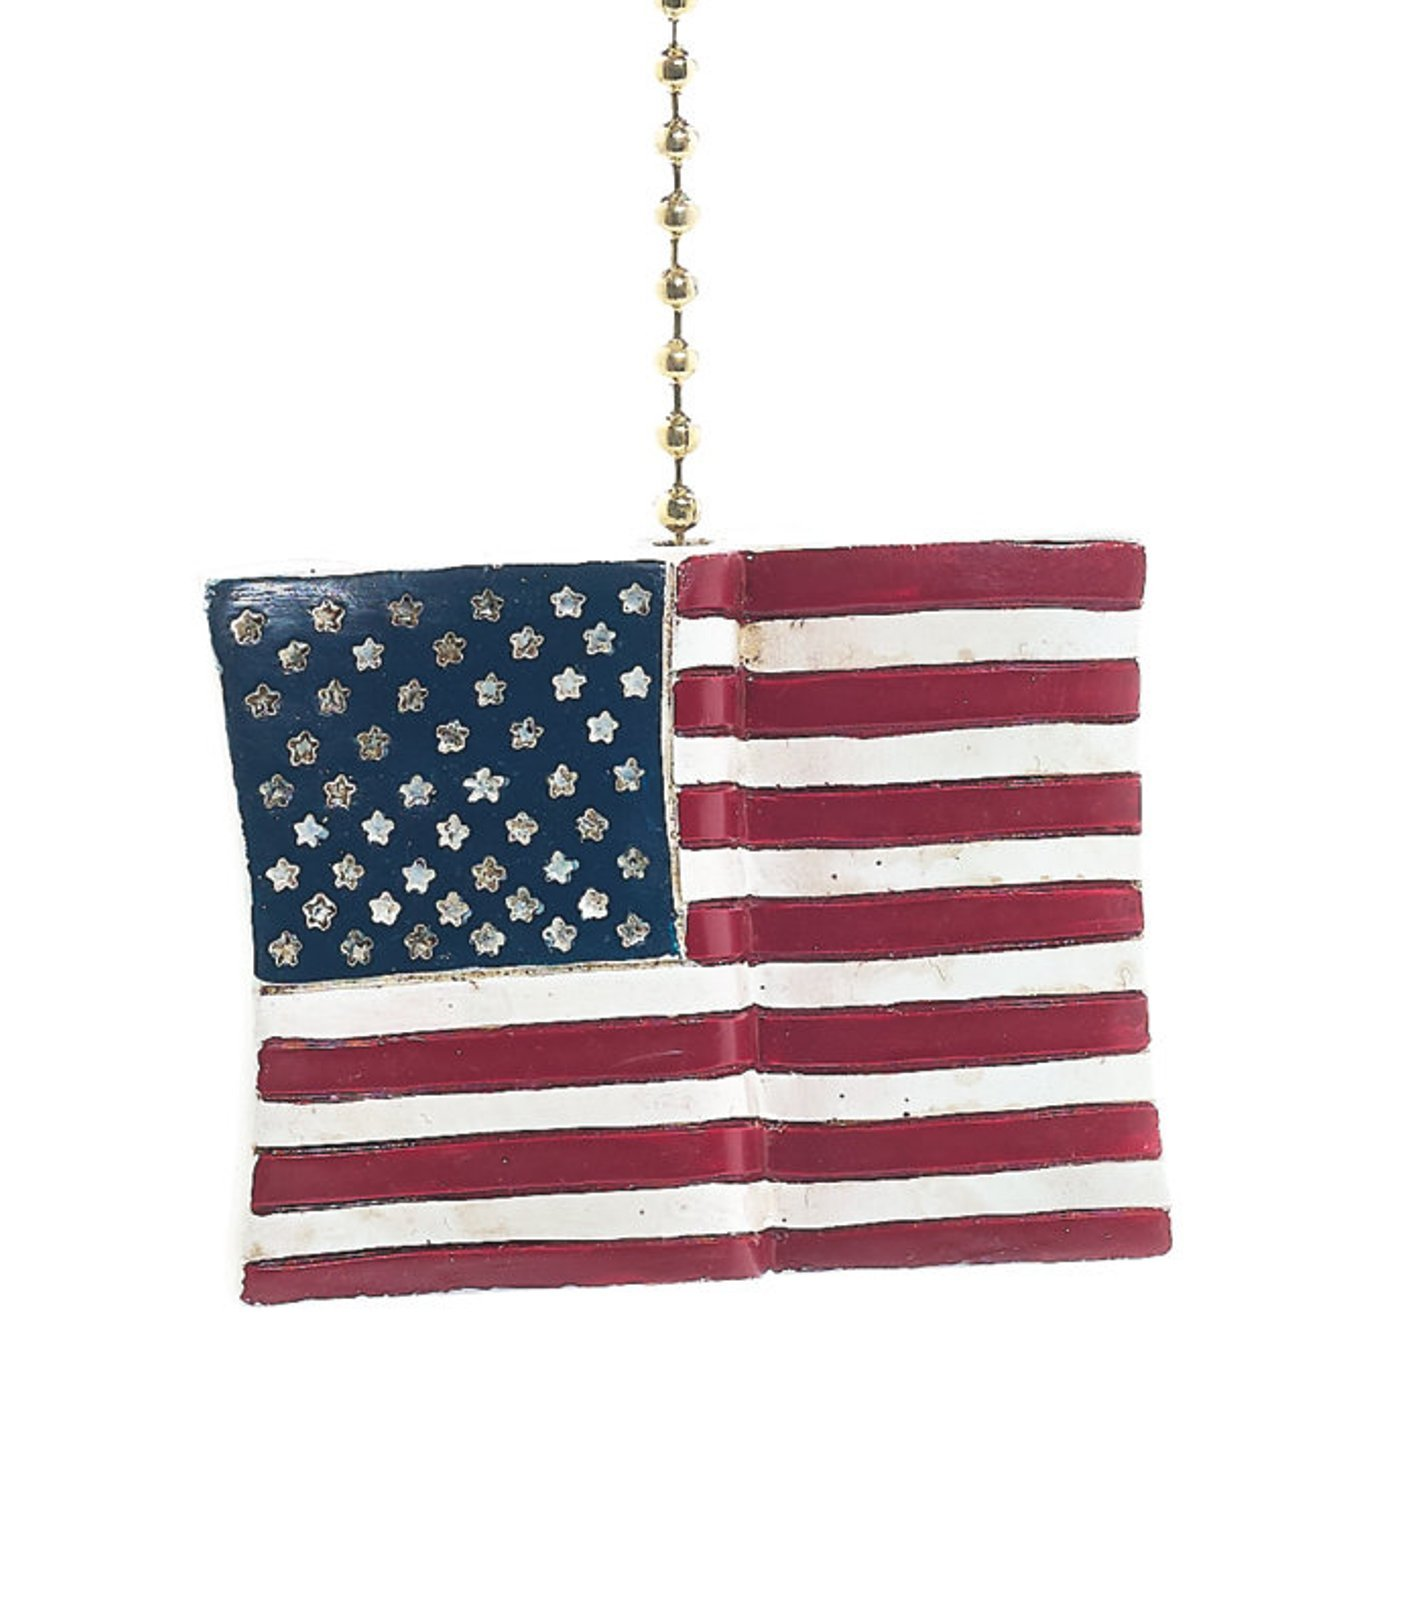 USA Patriotic American Flag Fan Pull Decorative Light Chain by Clementine Design